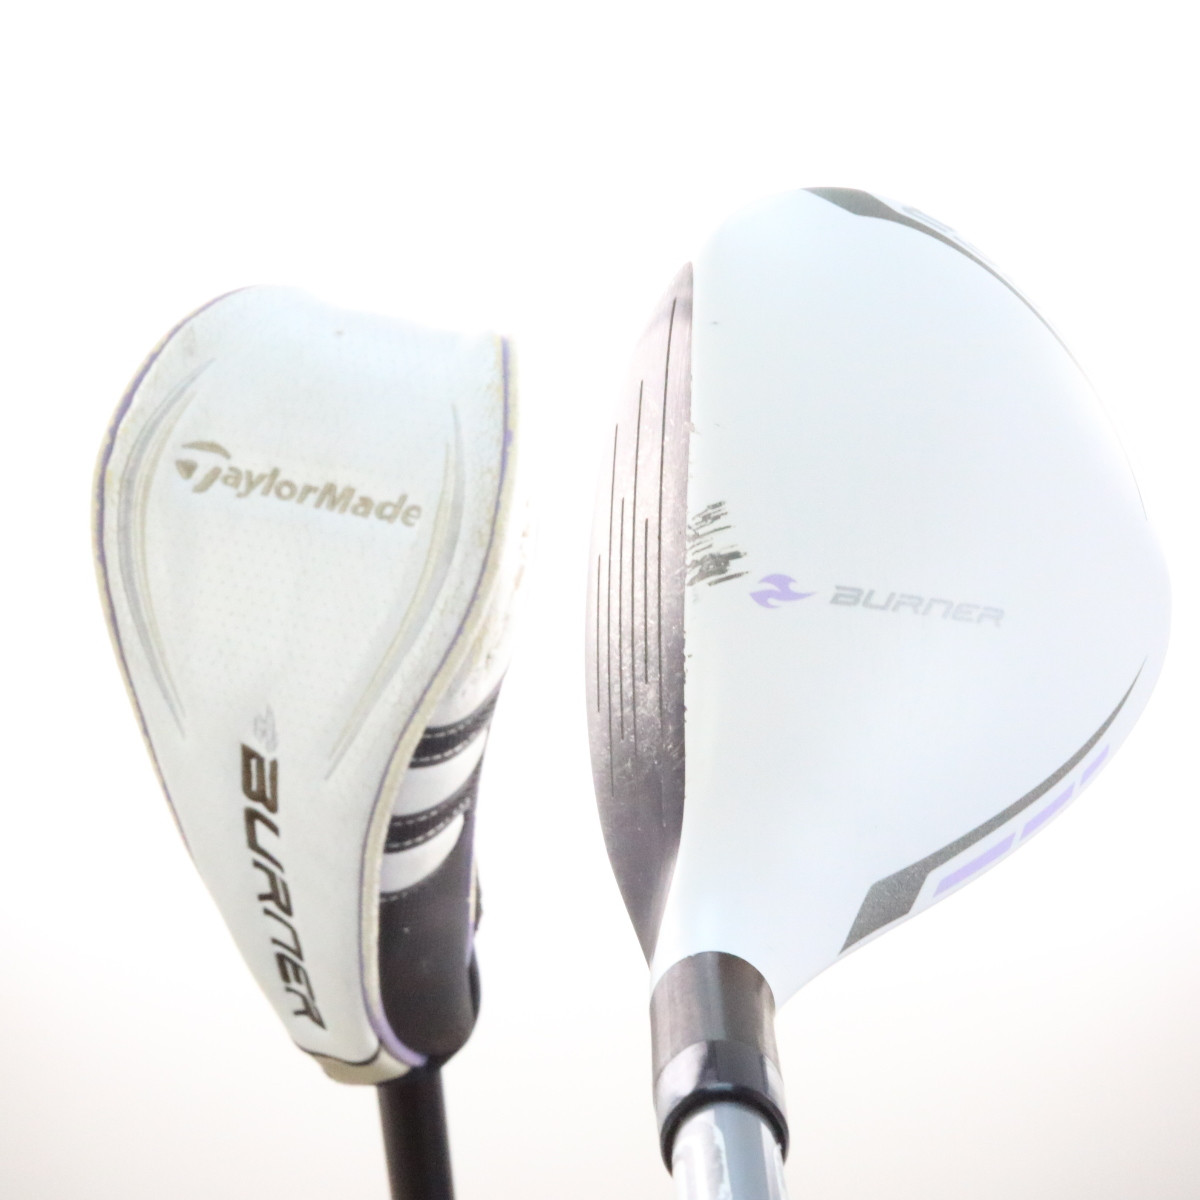 TaylorMade Burner Superfast 2 0 5 Rescue 24 deg REAX 50 Ladies Headcover  30600A